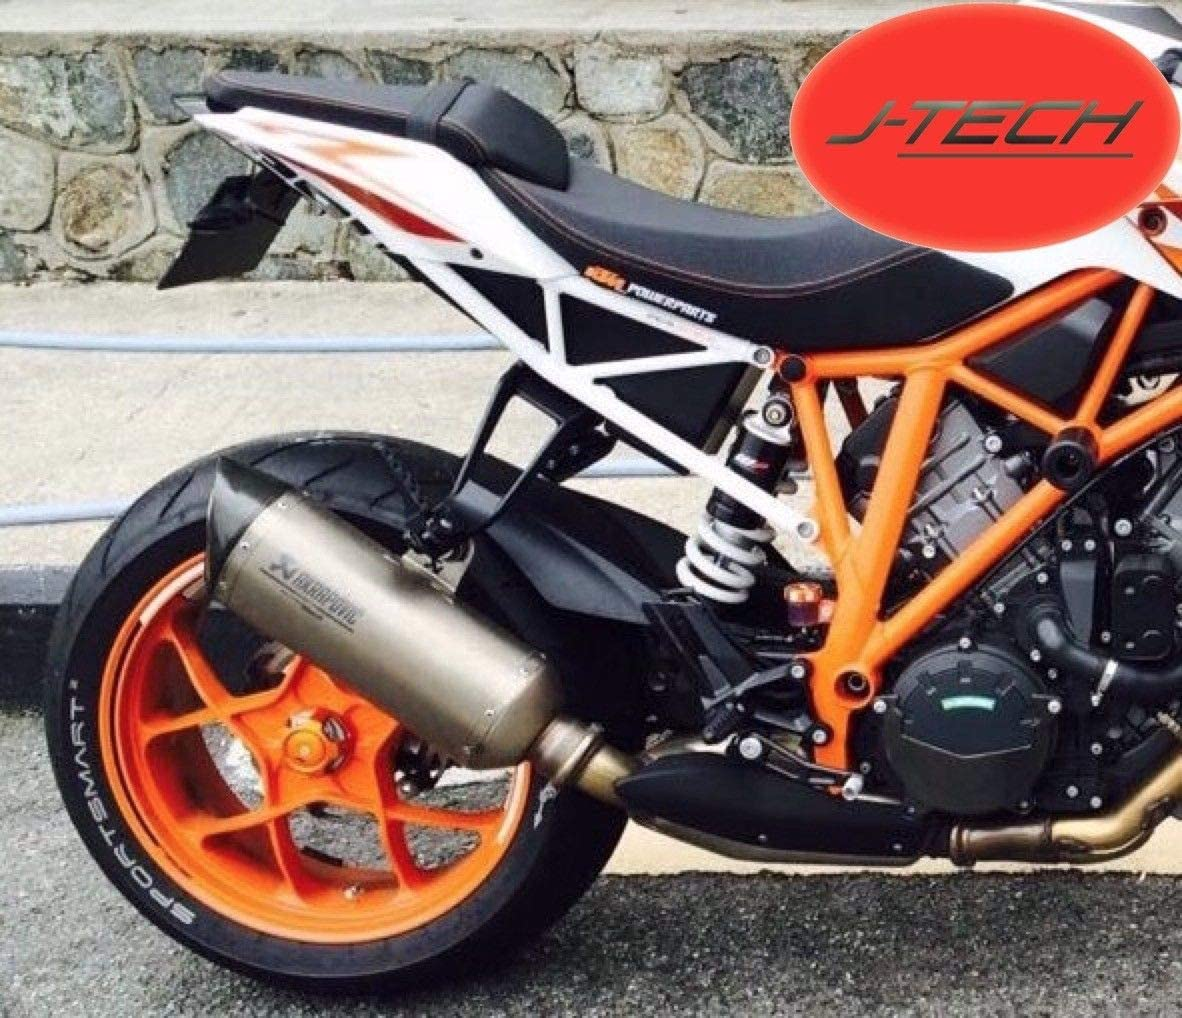 2014 2016 With LED Indicators *Plug /& Play* **Fender Eliminator//Tail Tidy to fit a KTM Super Duke R Tail Tidy